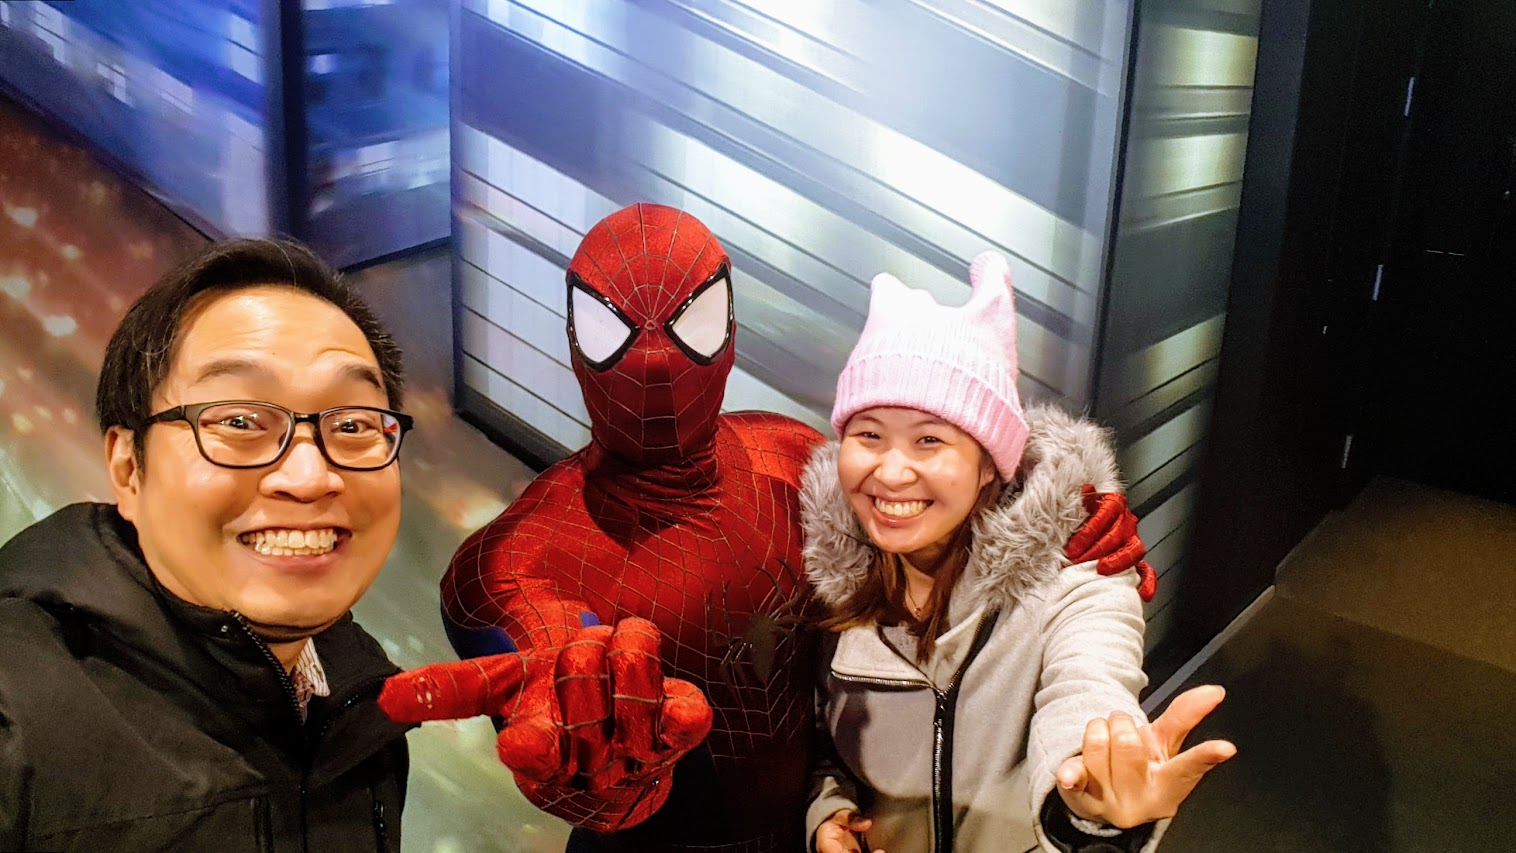 Welfie with Spiderman!